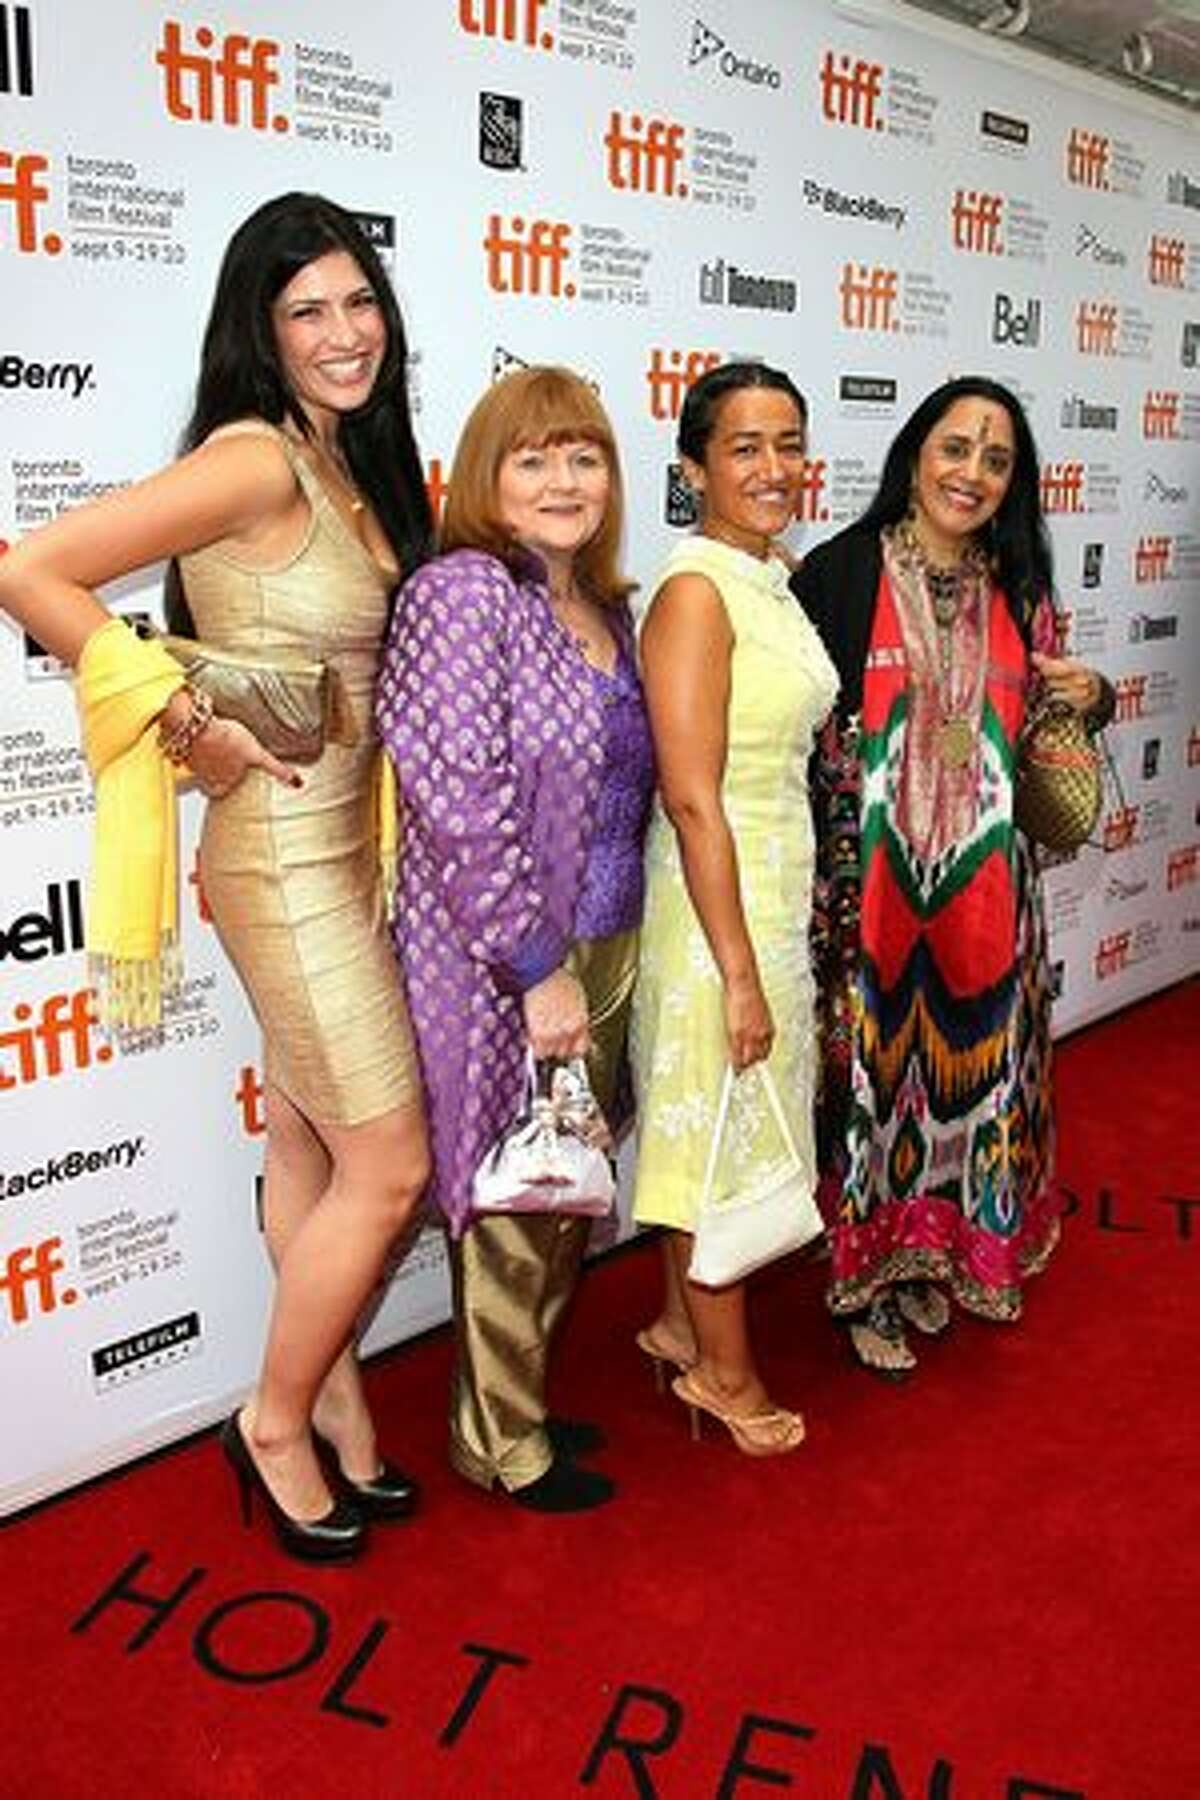 Actresses Shaana Levy Diya, Lesley Nicol, Zita Sattar and Ila Arun attend the